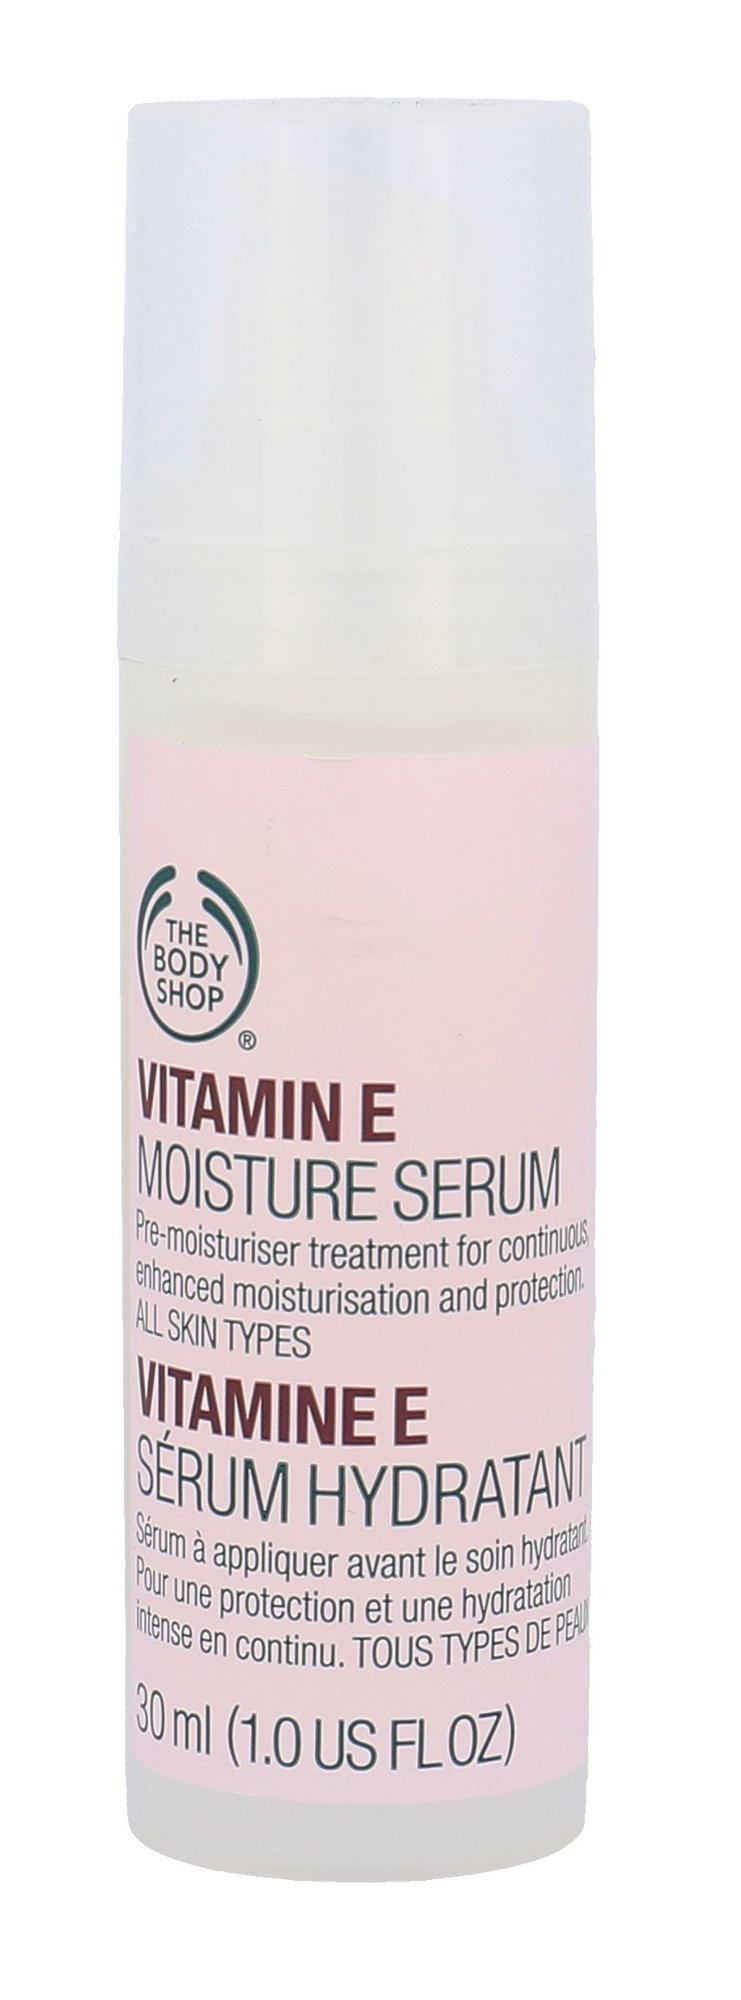 The Body Shop Vitamin E Cosmetic 30ml